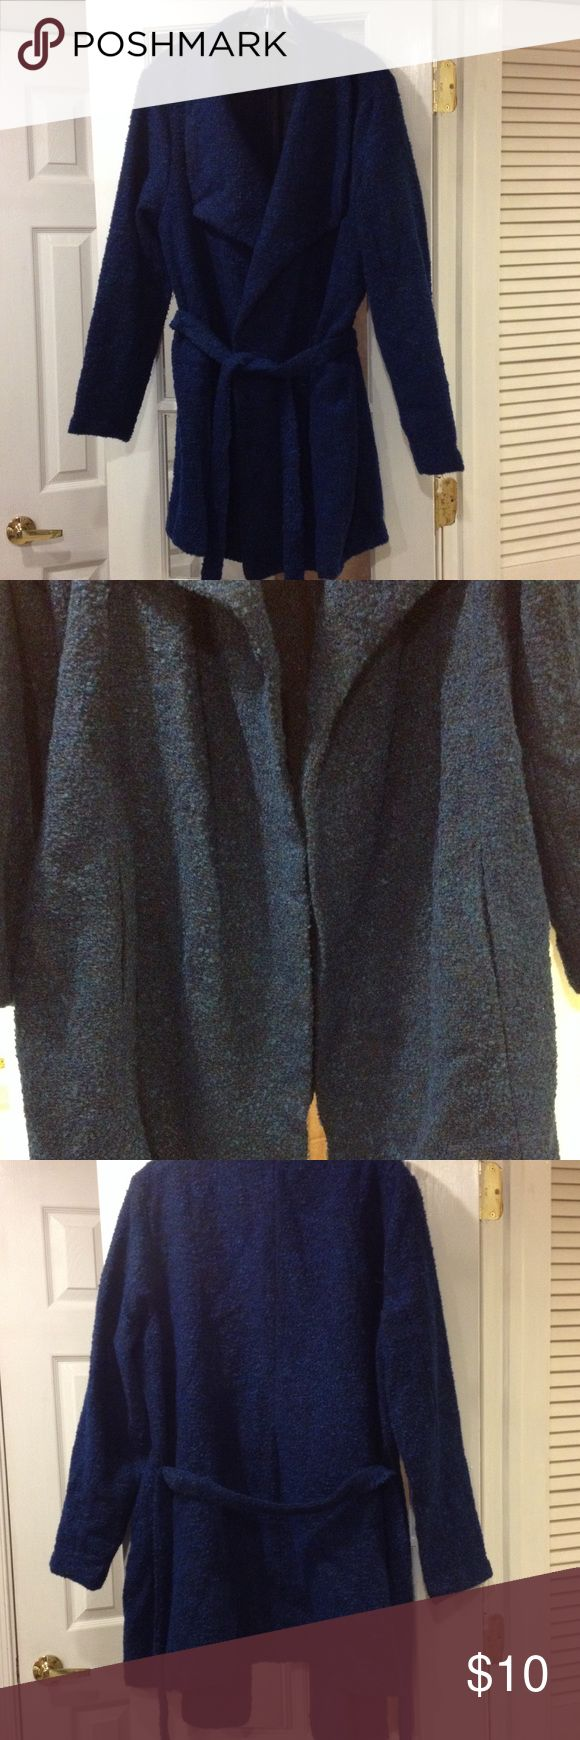 Size 1X Femme Wrap Coat NWT Size 1X Femme Wrap Coat with 2 pockets new with tags Jackets & Coats